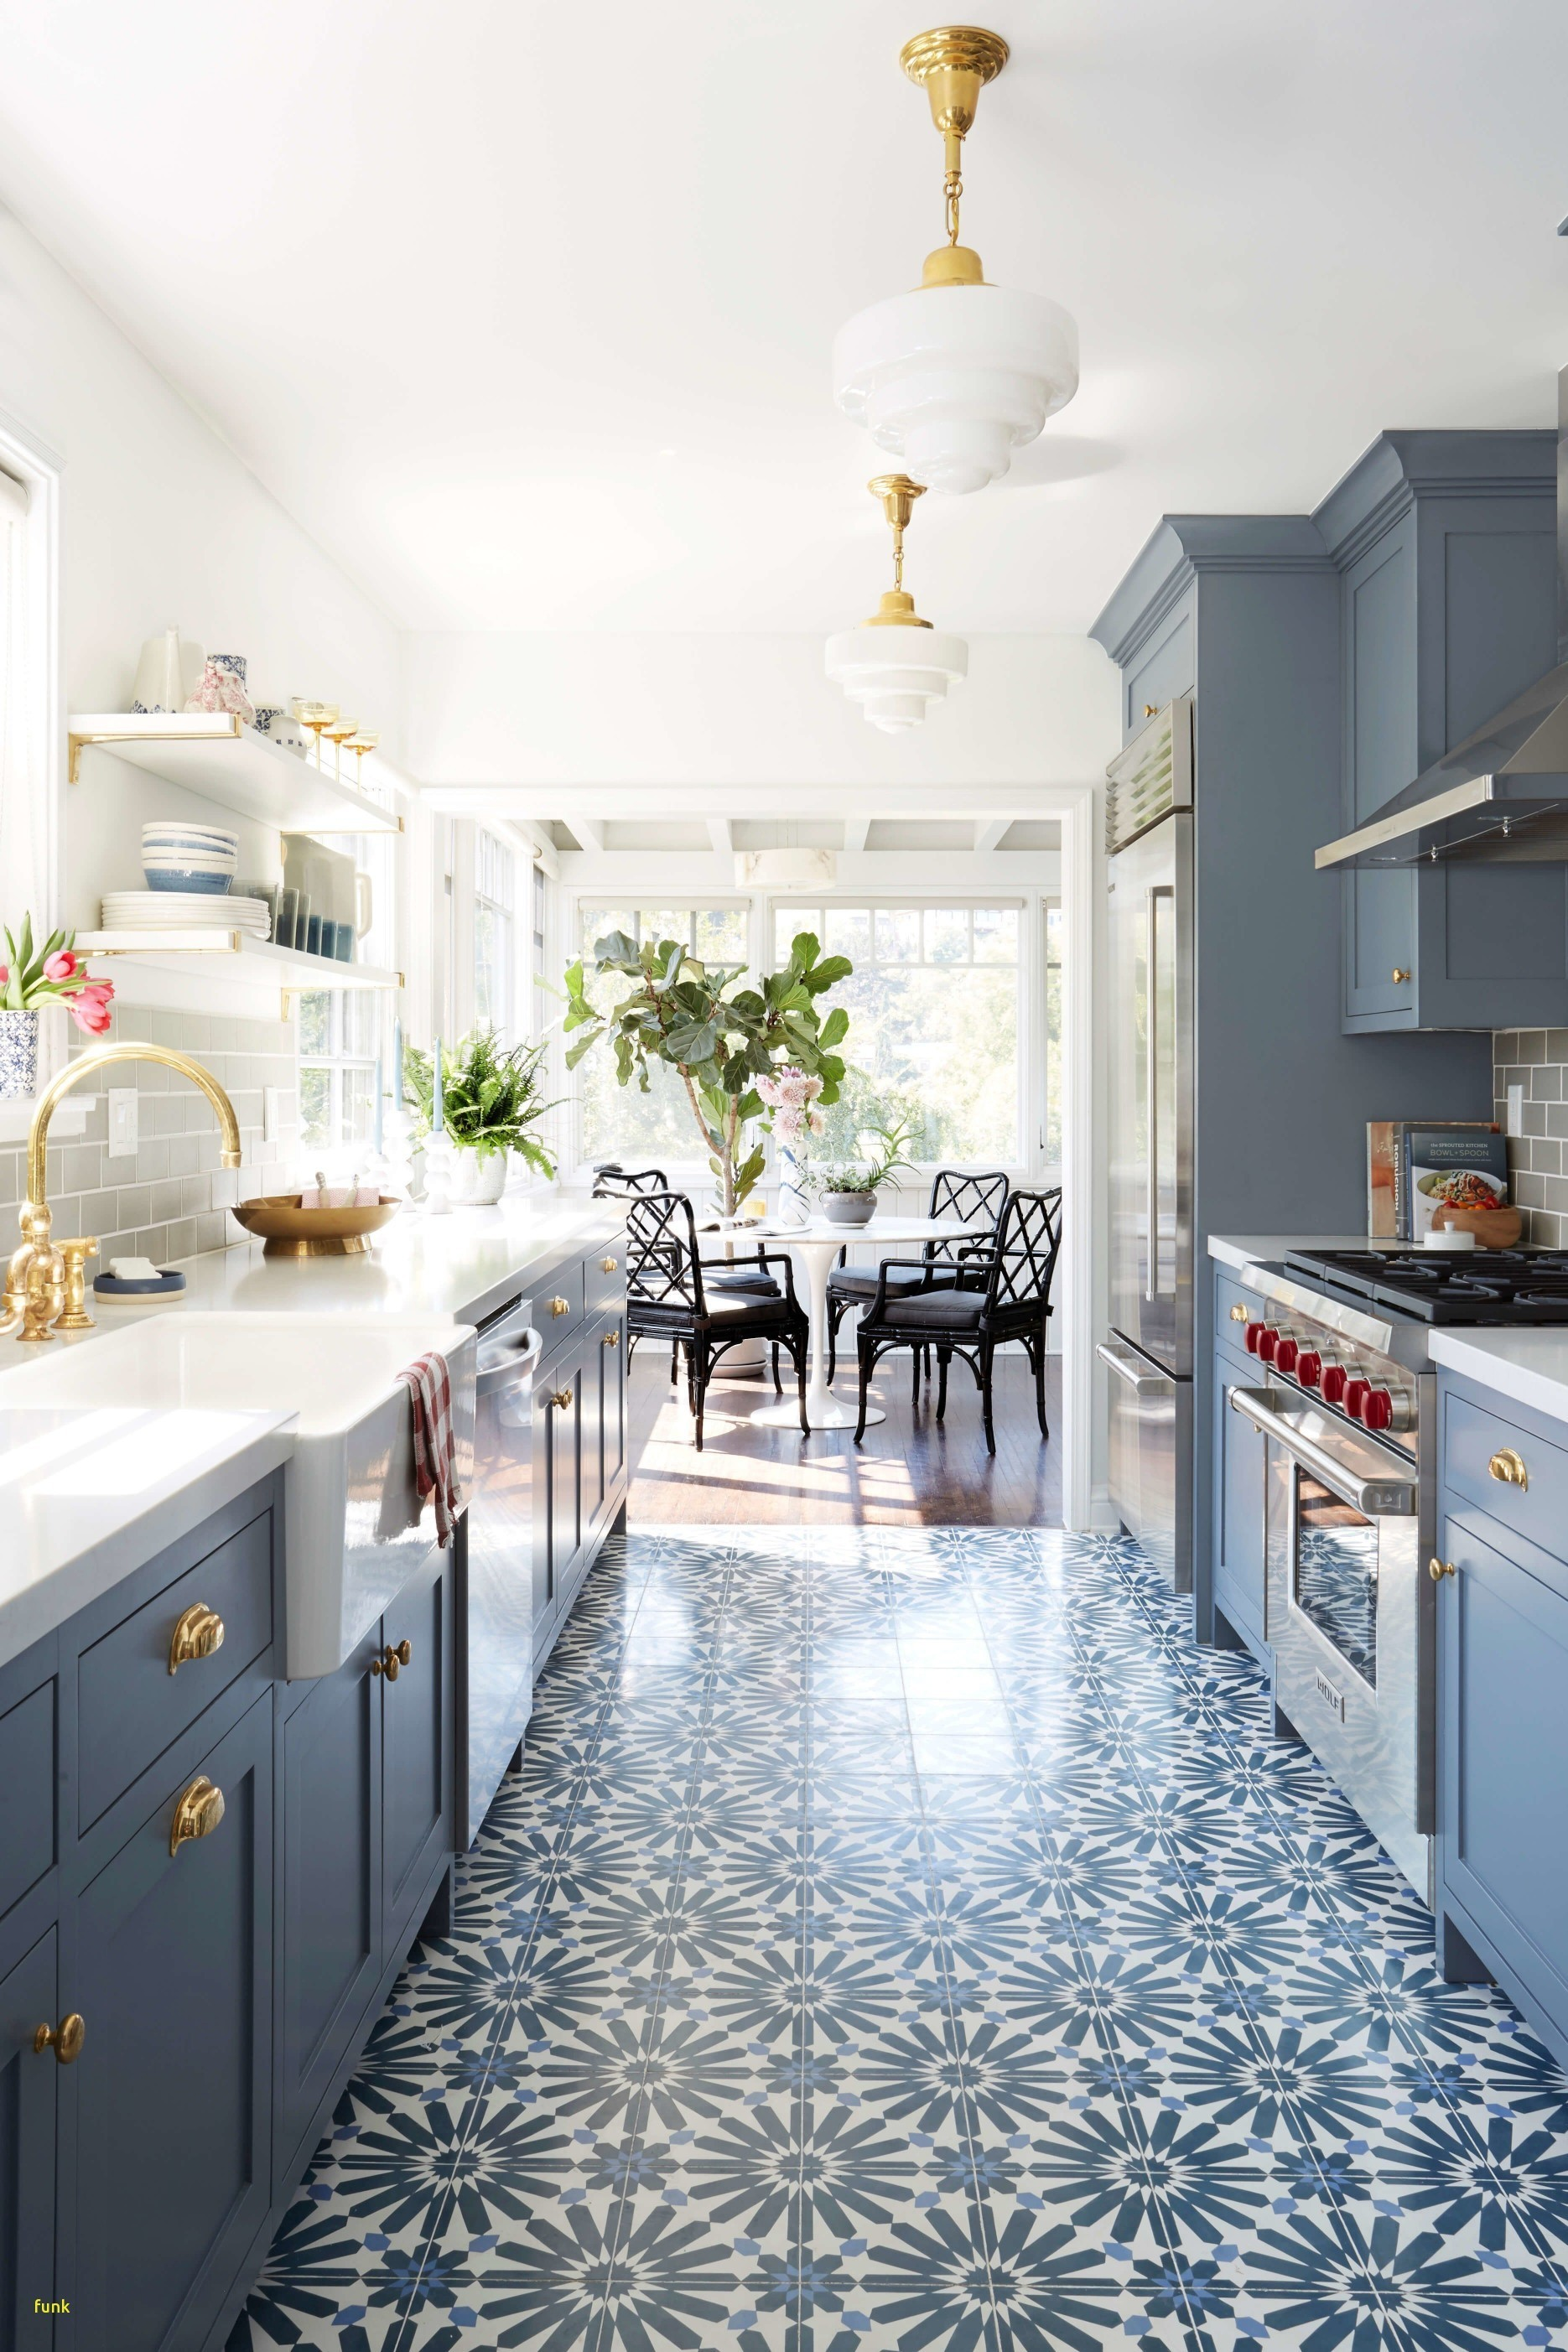 20 Inspirational Small Kitchen Remodeling Ideas s